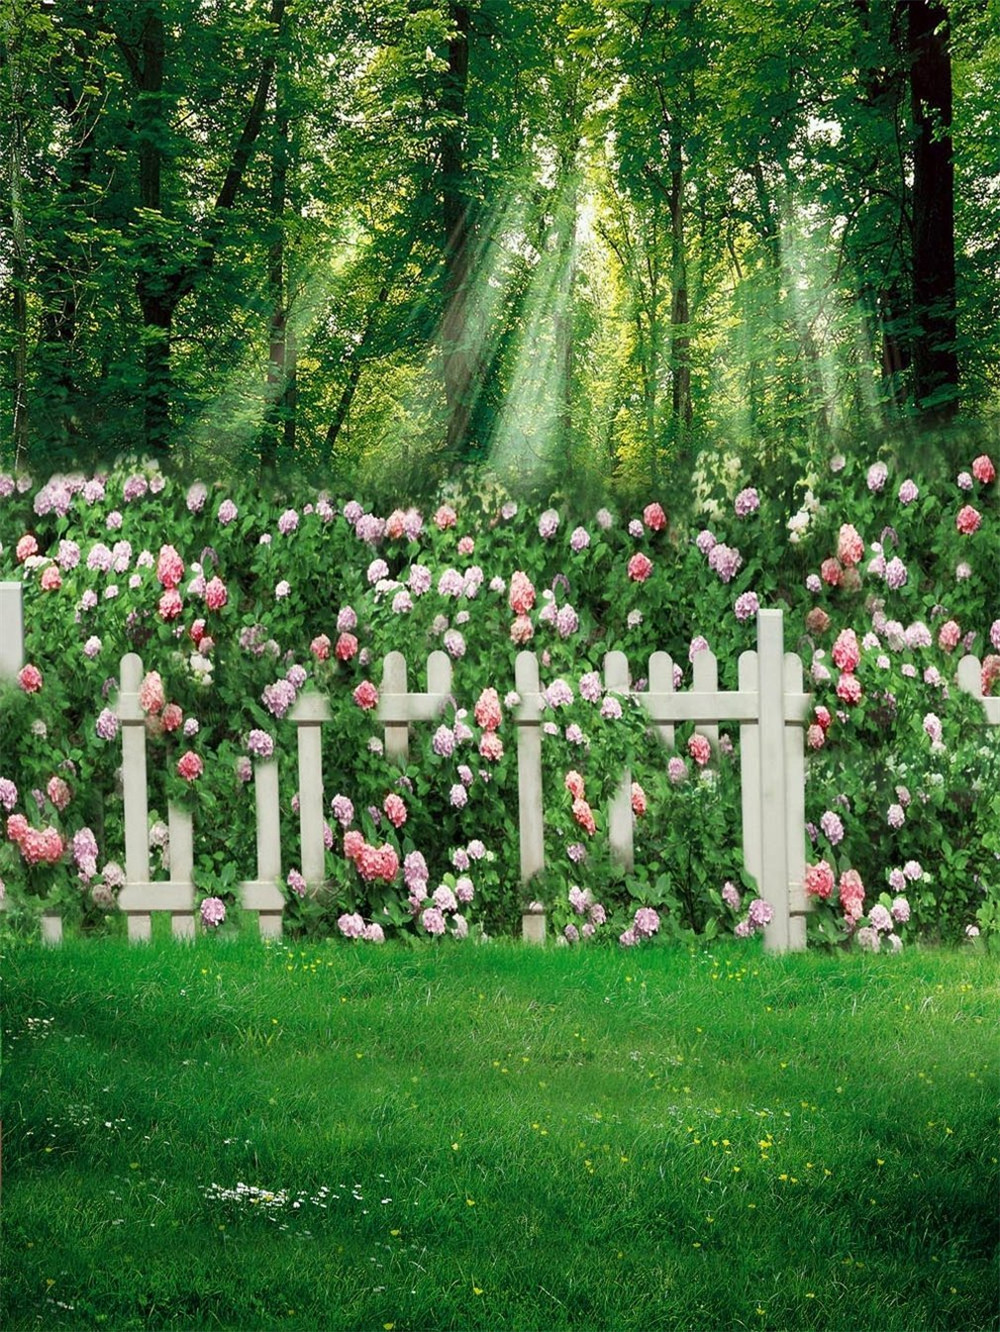 Garden Scenic Photography Backdrop Green Grass Floor Forest Trees White Fence Pink Flowers Kids Children Spring Photo Background louis garden artificial flowers fake rose in picket fence pot pack small potted plant